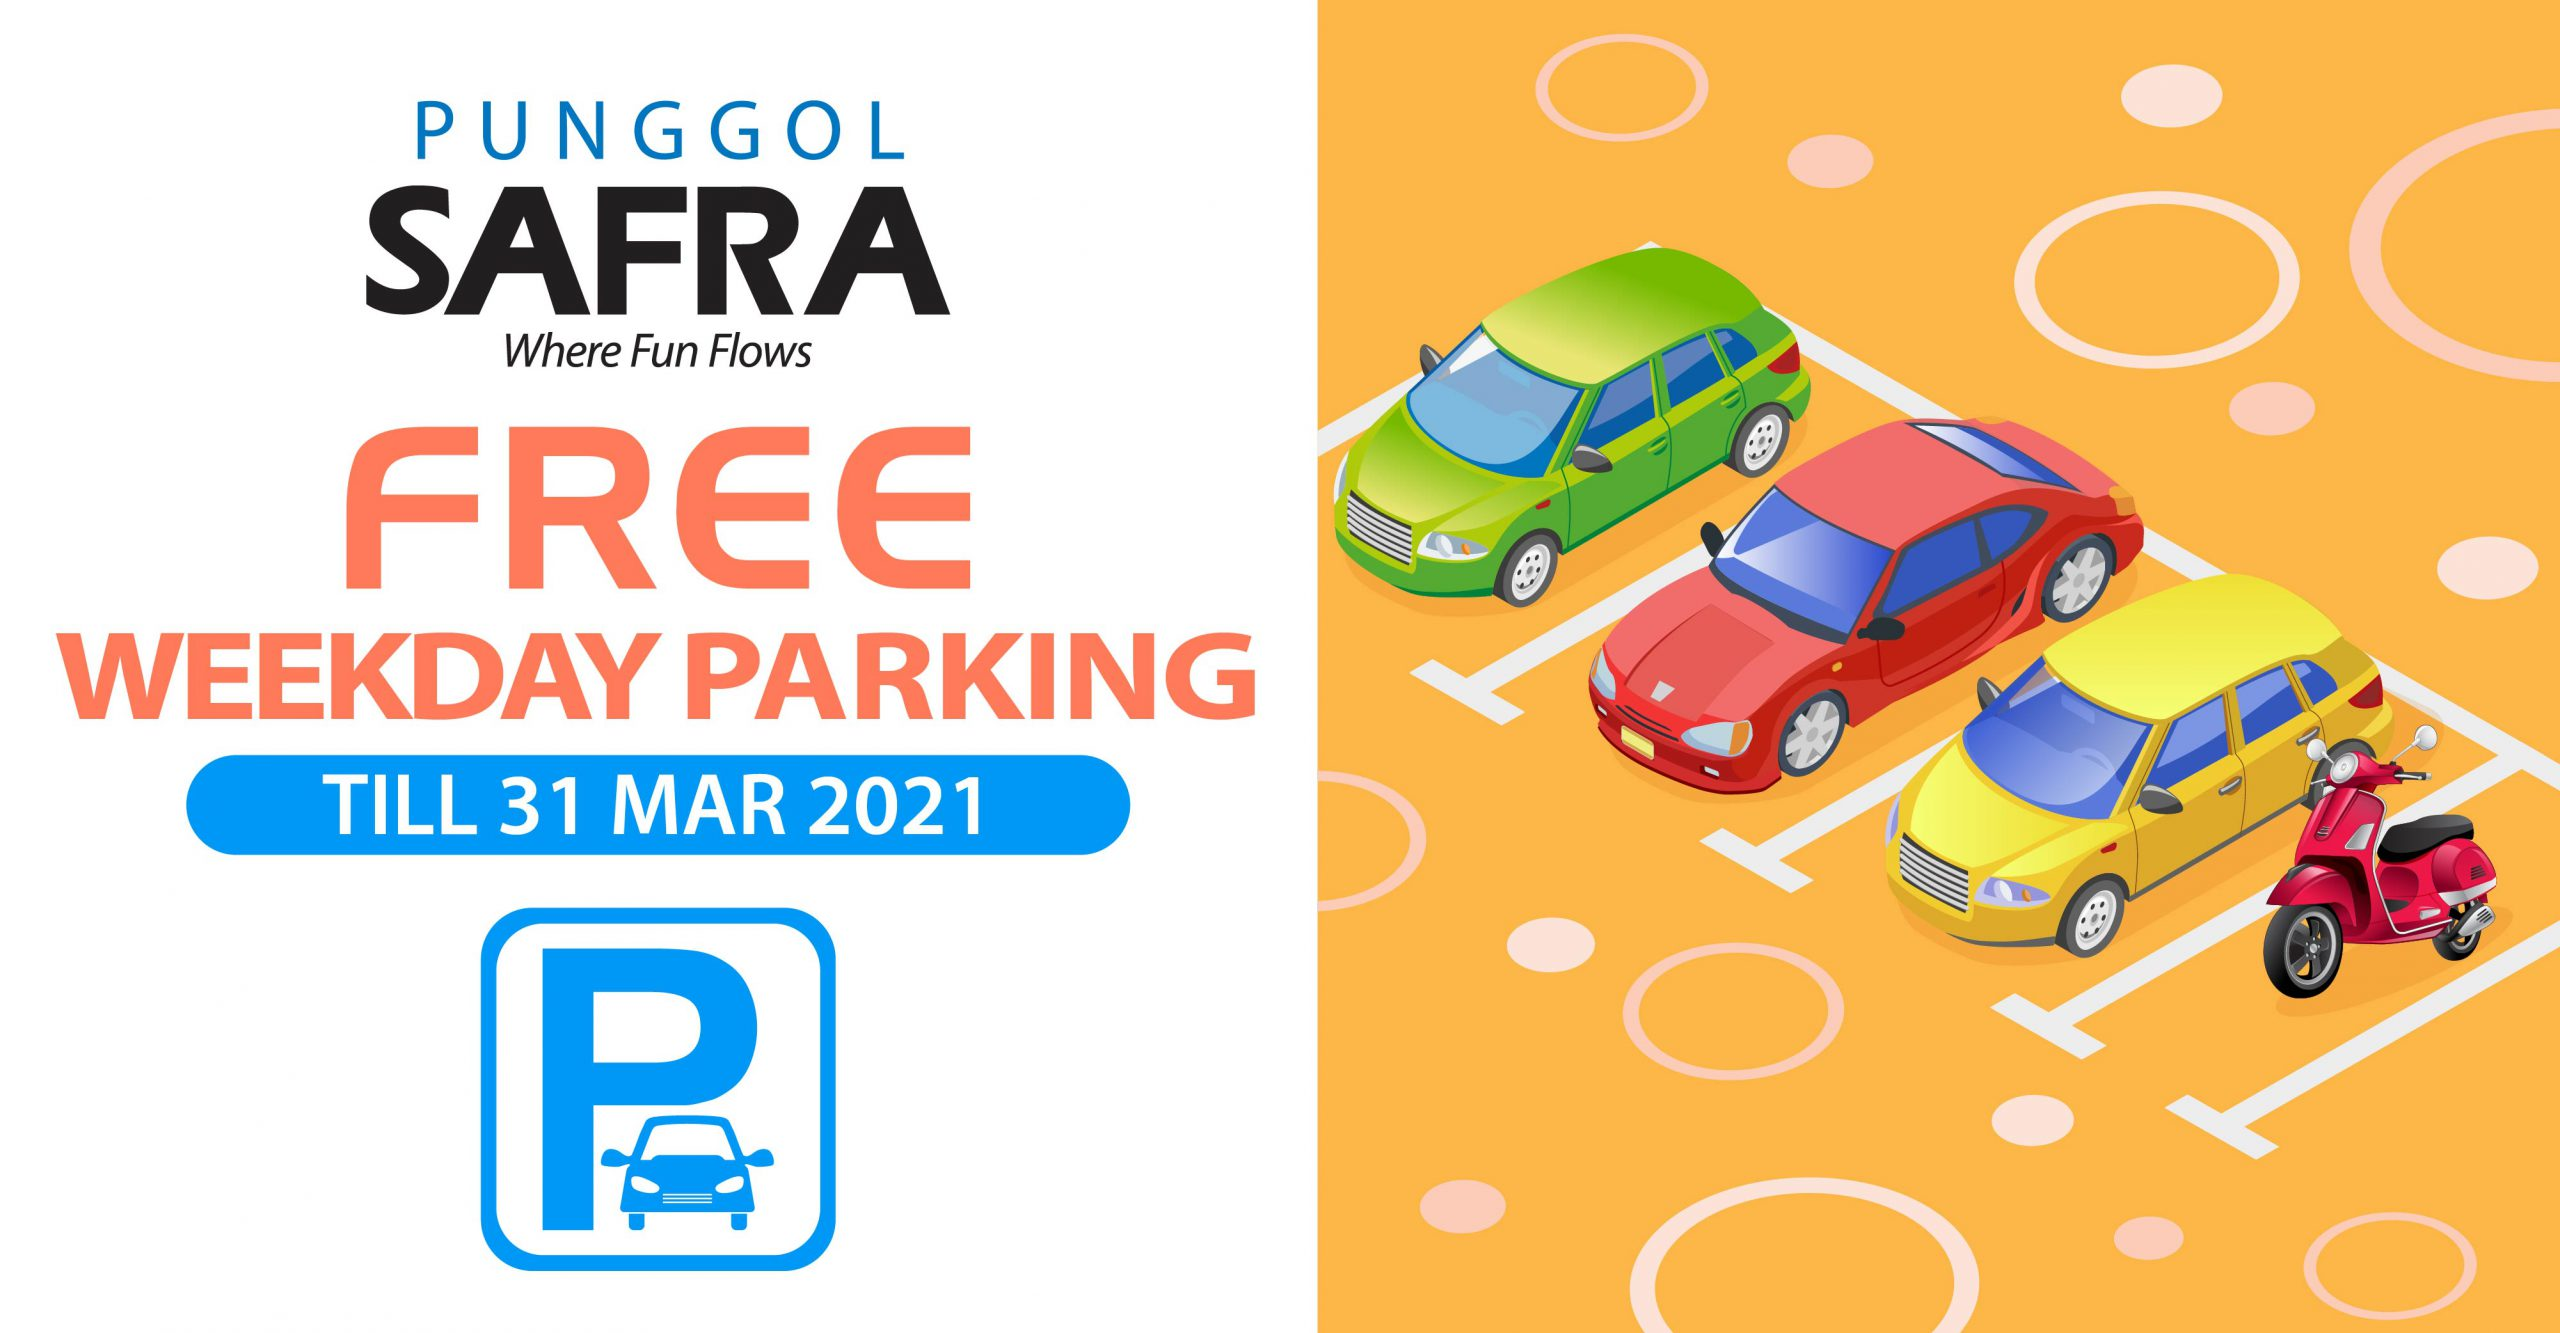 Free weekday parking at SAFRA with any amount spend.